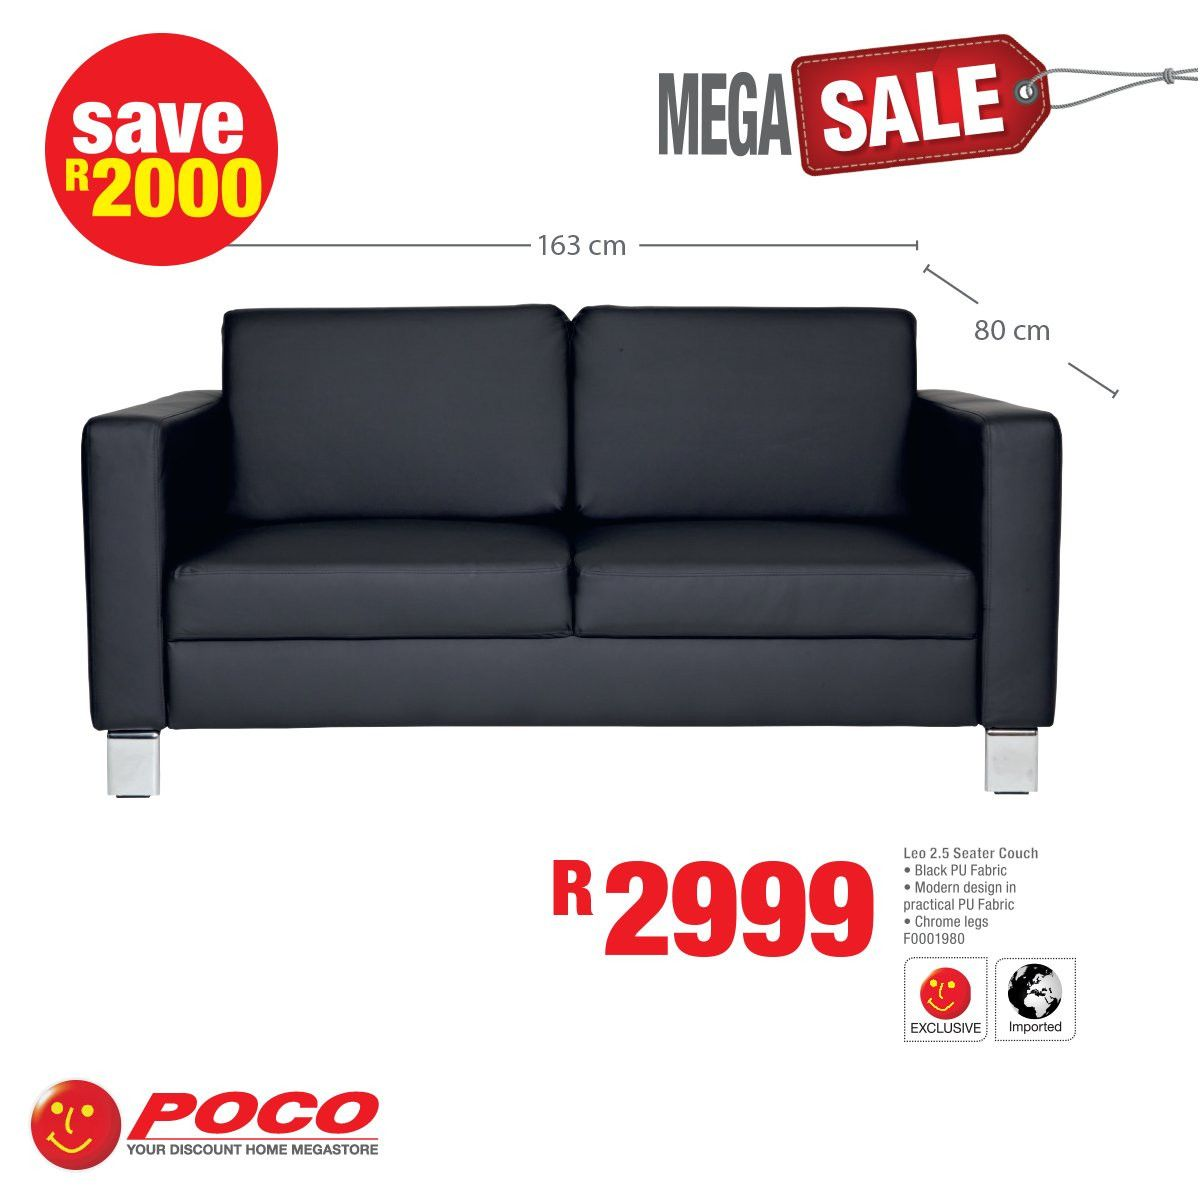 Positiv Poco Sofa Leather Sofa Bed Faux Leather Sofa Leather Corner Sofa